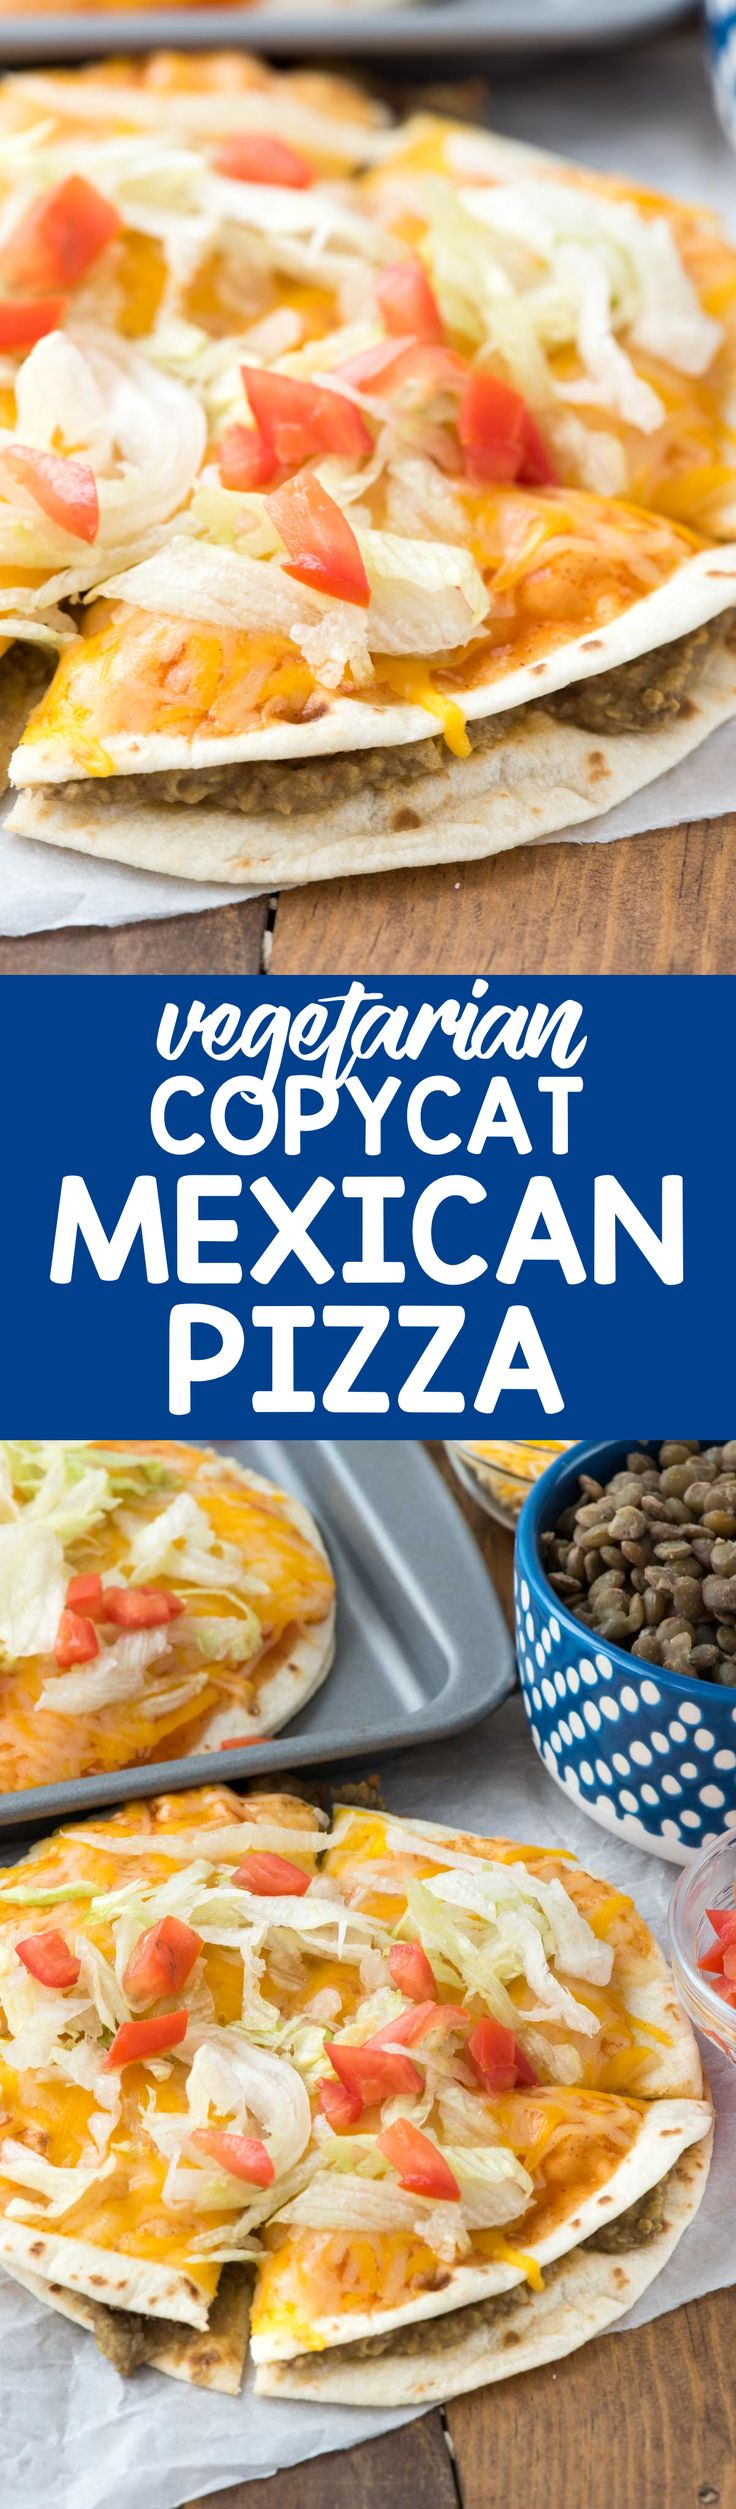 Copycat Mexican Pizza - just like from the fast food place but it's healthier and vegetarian and you can make it at home!